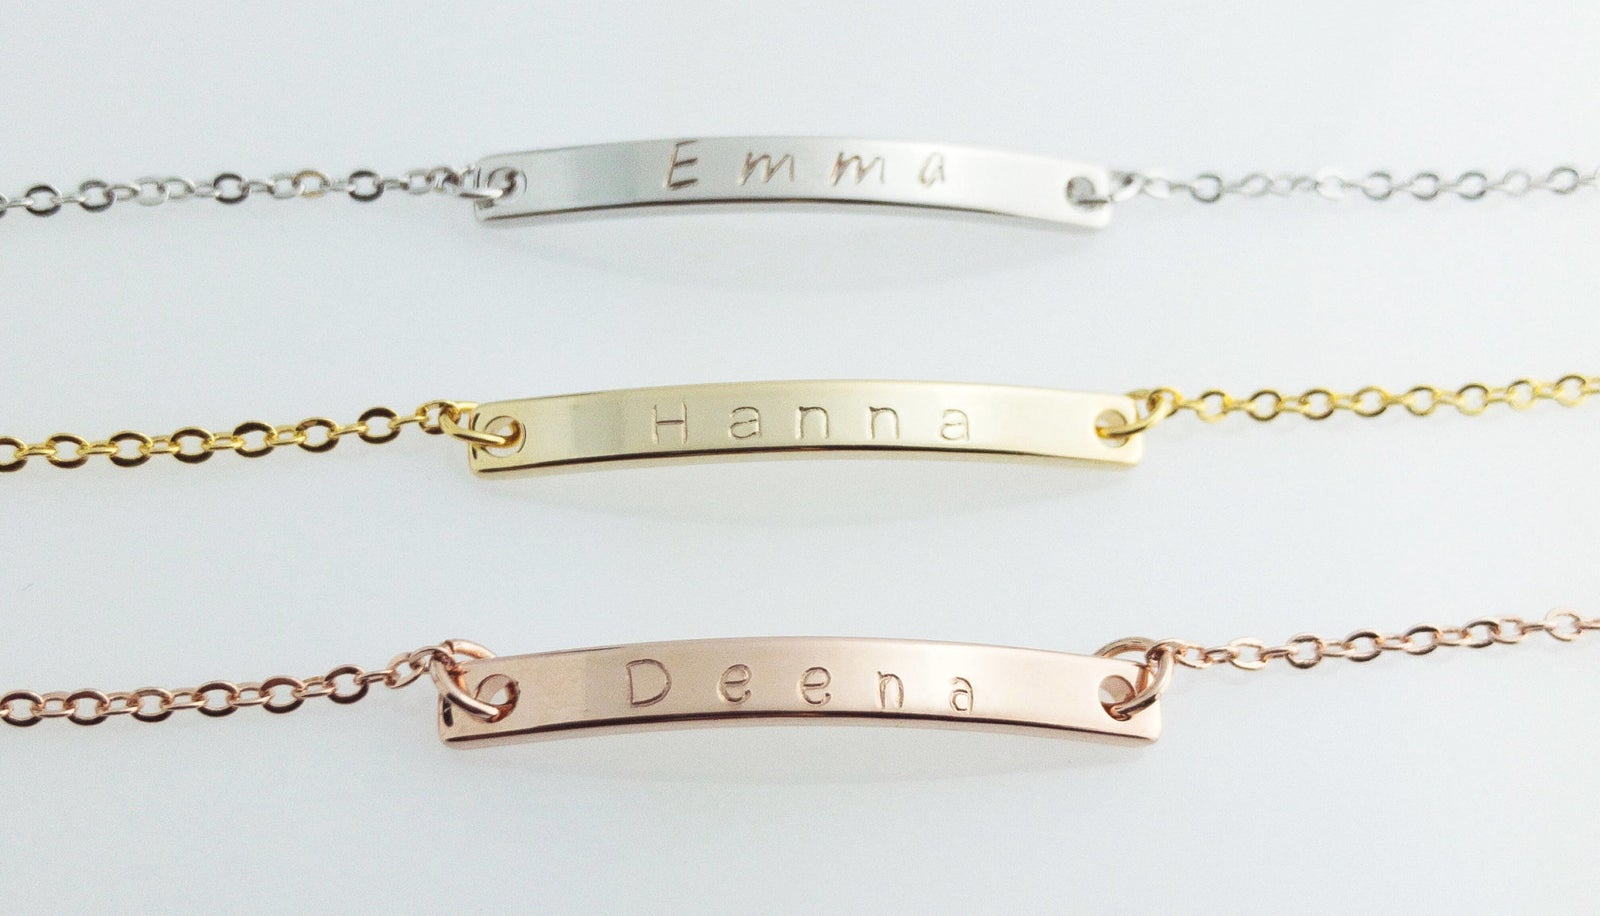 Three bracelets with name bars in silver, gold, and rose gold